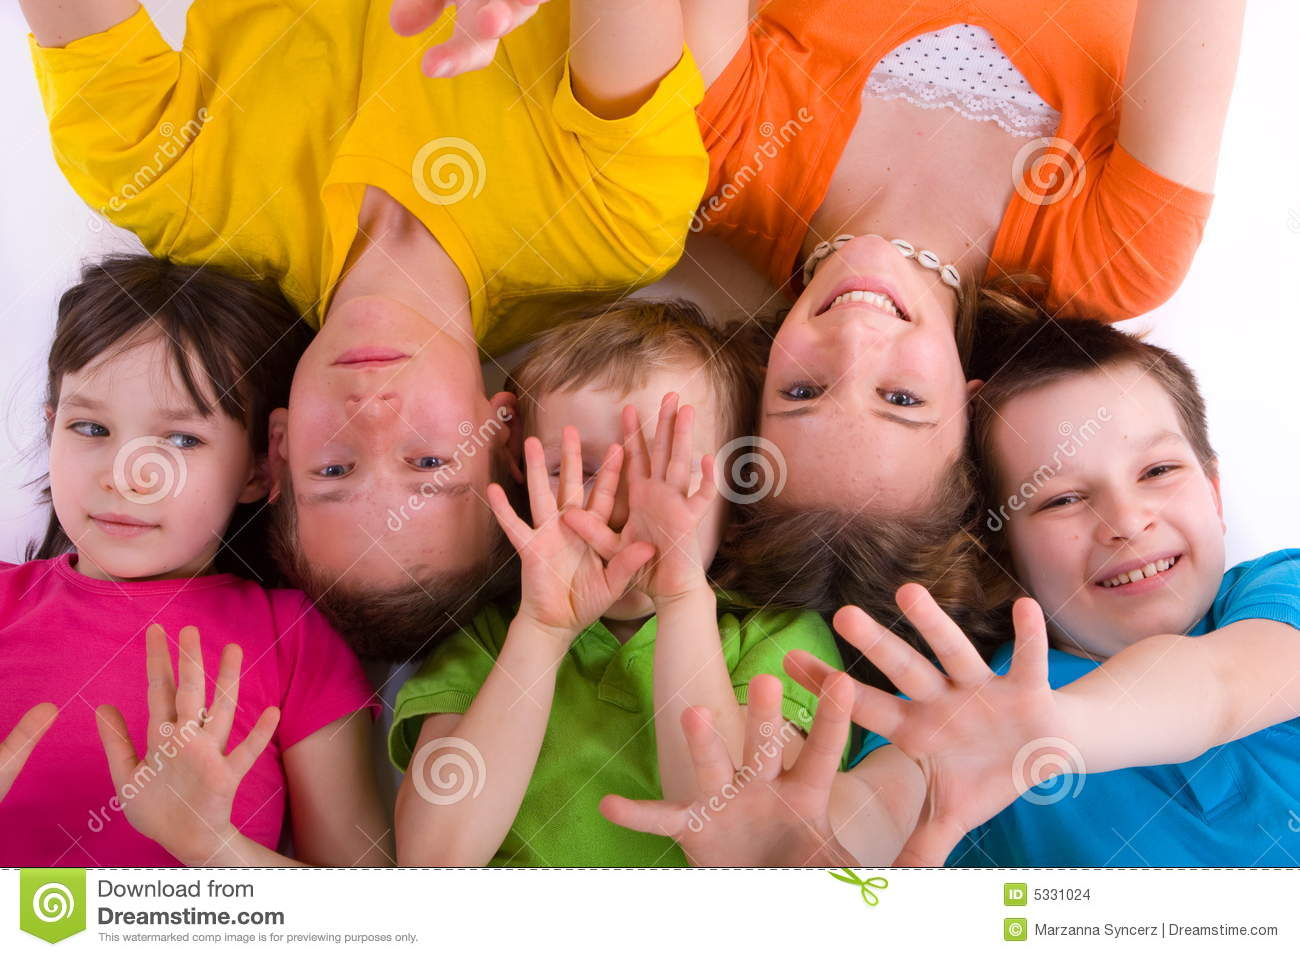 Children playing with hands